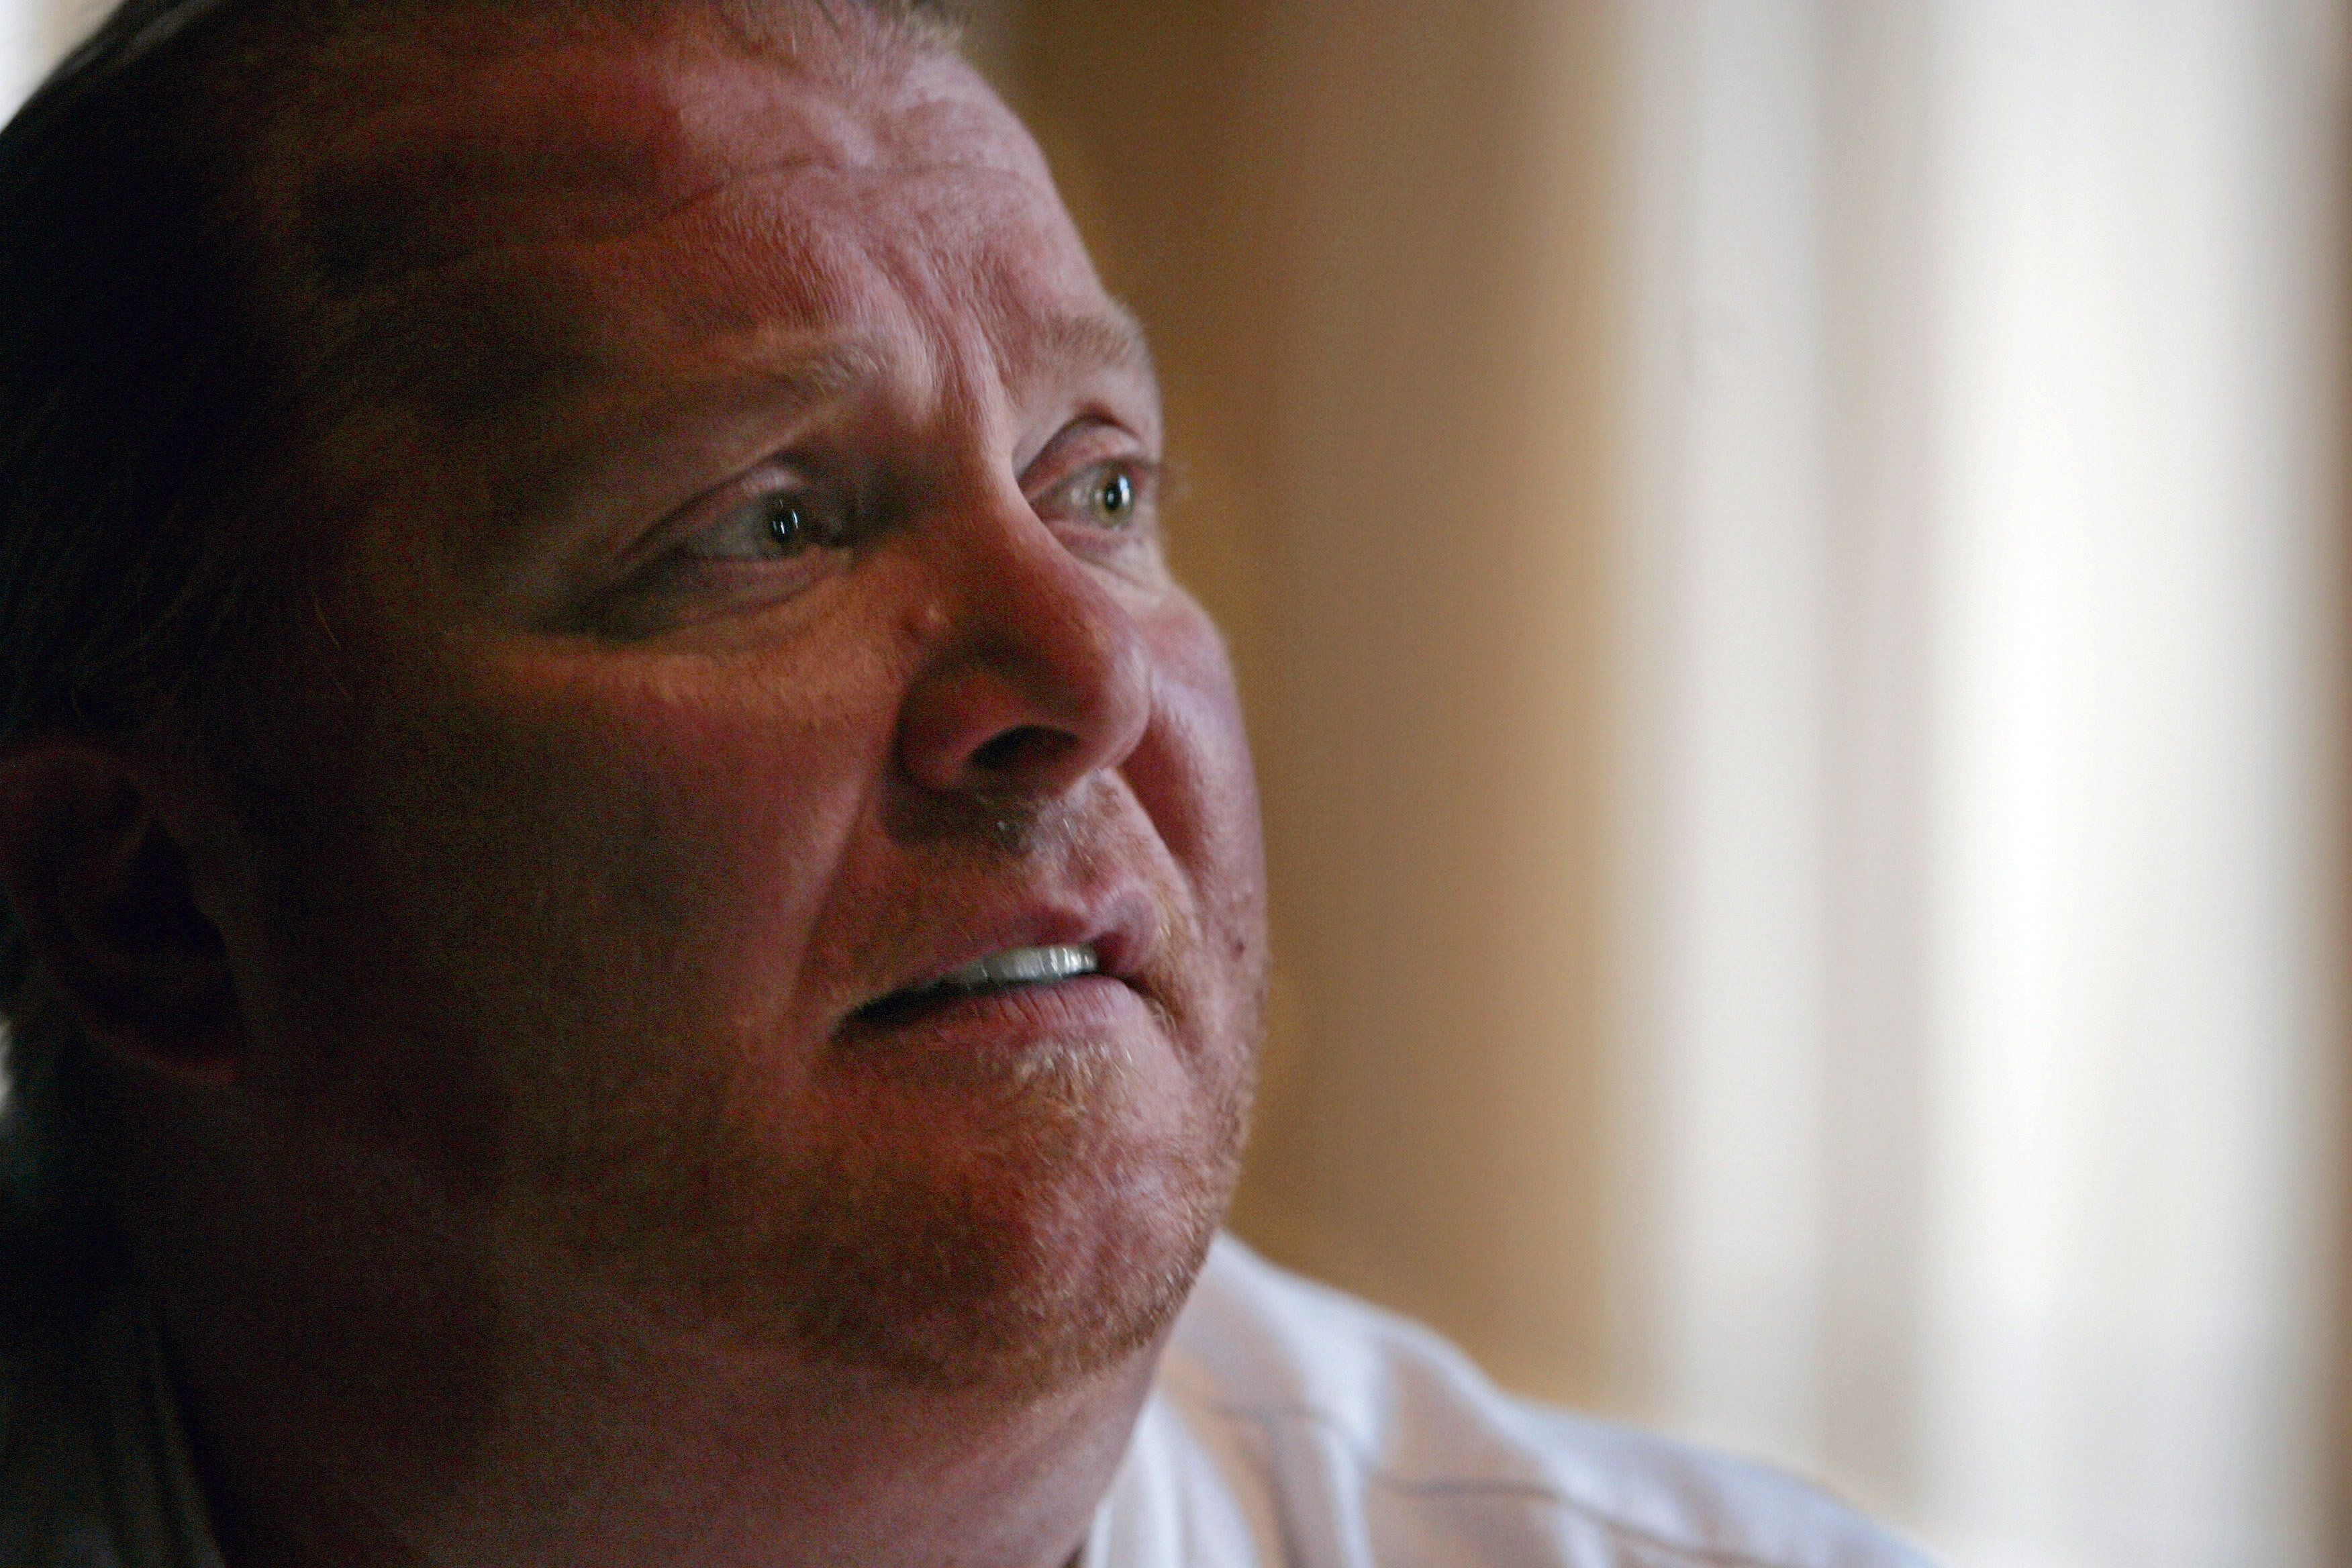 Batali has been accused of sexual misconduct by eight women.